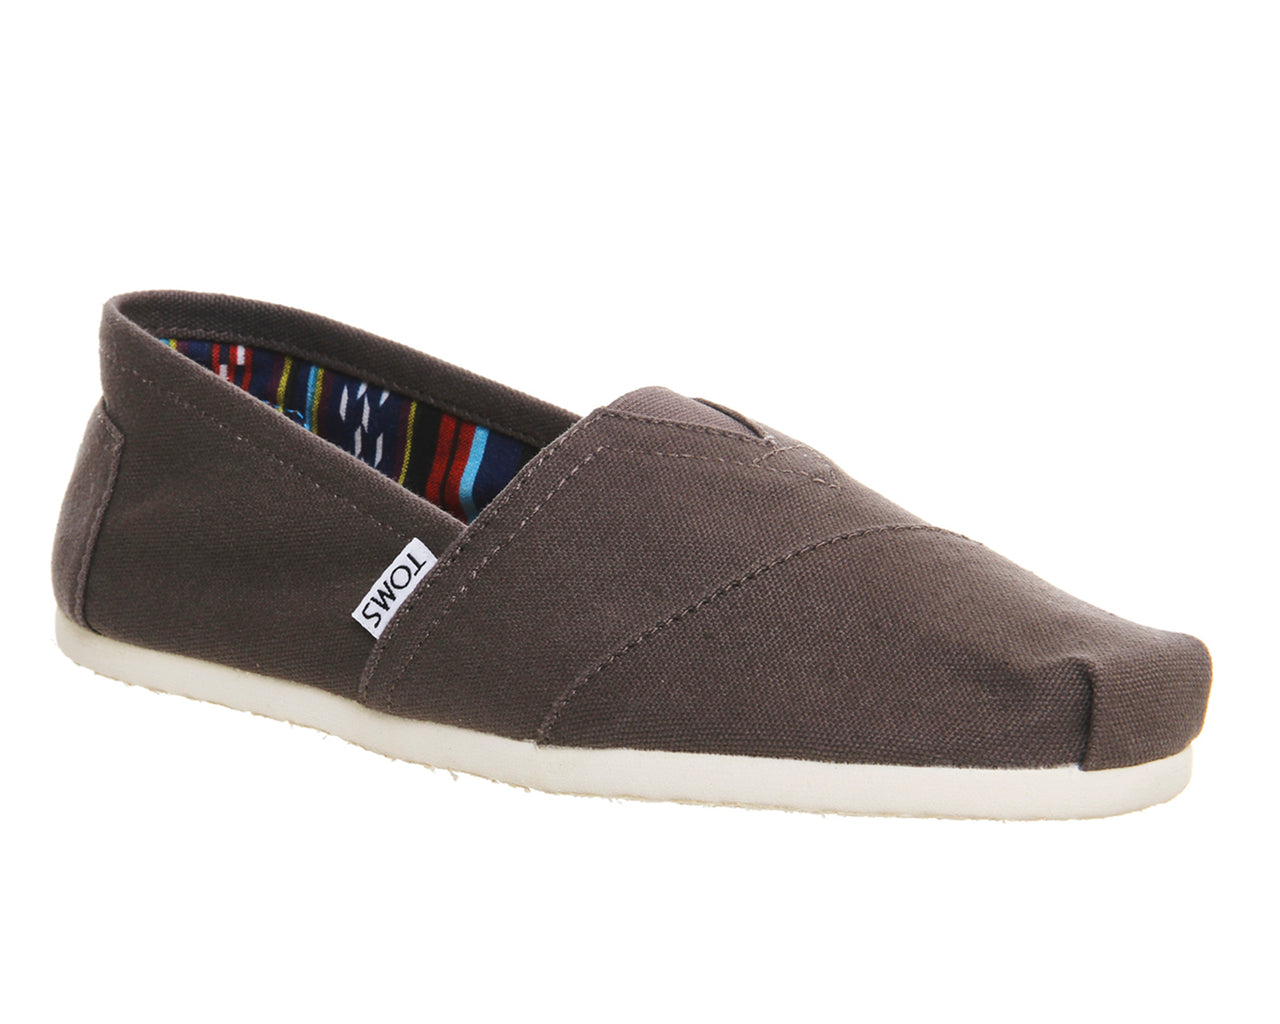 c0900f91525 Mens Toms Classic Slip Ons Ash Canvas – OFFCUTS SHOES by OFFICE